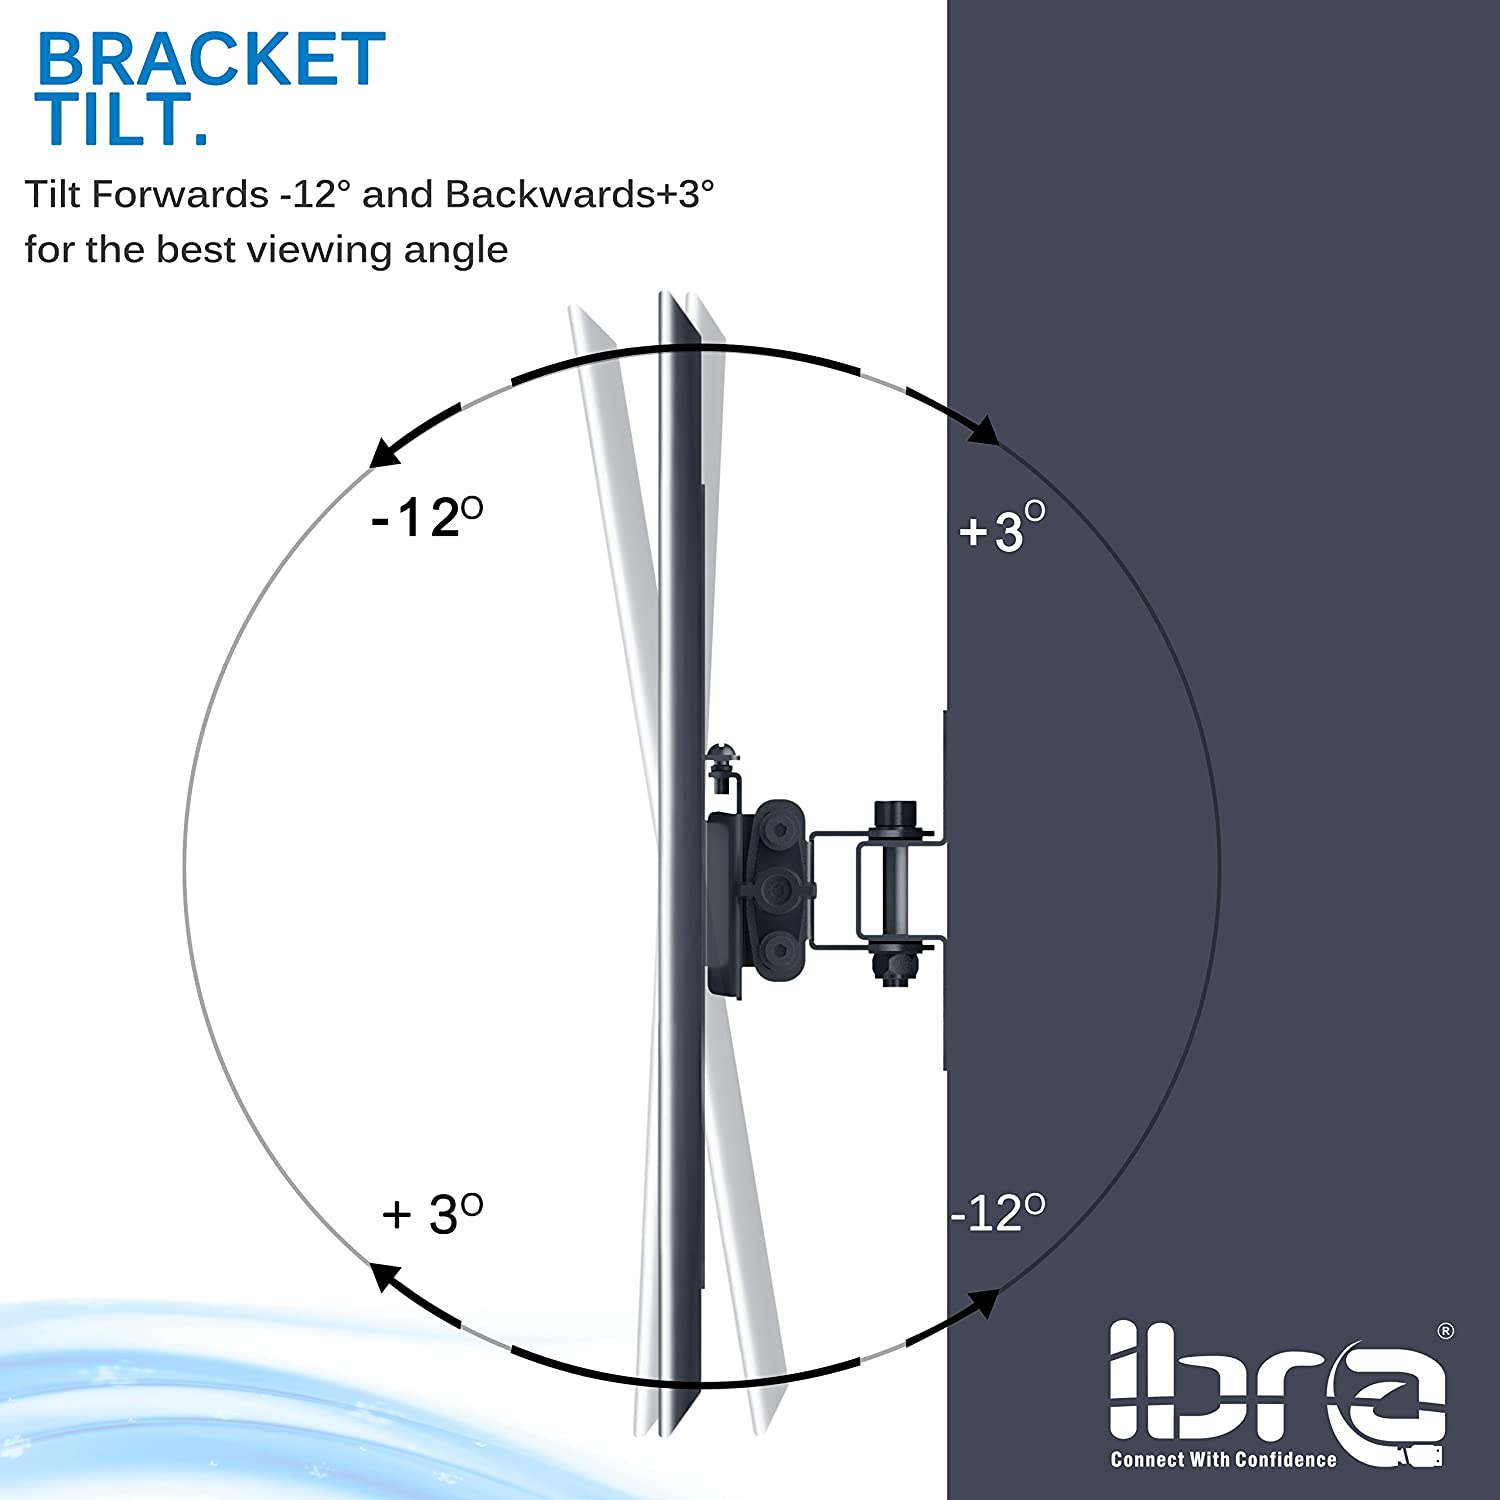 IBRA Flat TV Mount for LED/&LCD TV Sizes from 23~ 42 Tilt and Swivel Mount with Lockable system,cable management with Integrated Spirit Level.